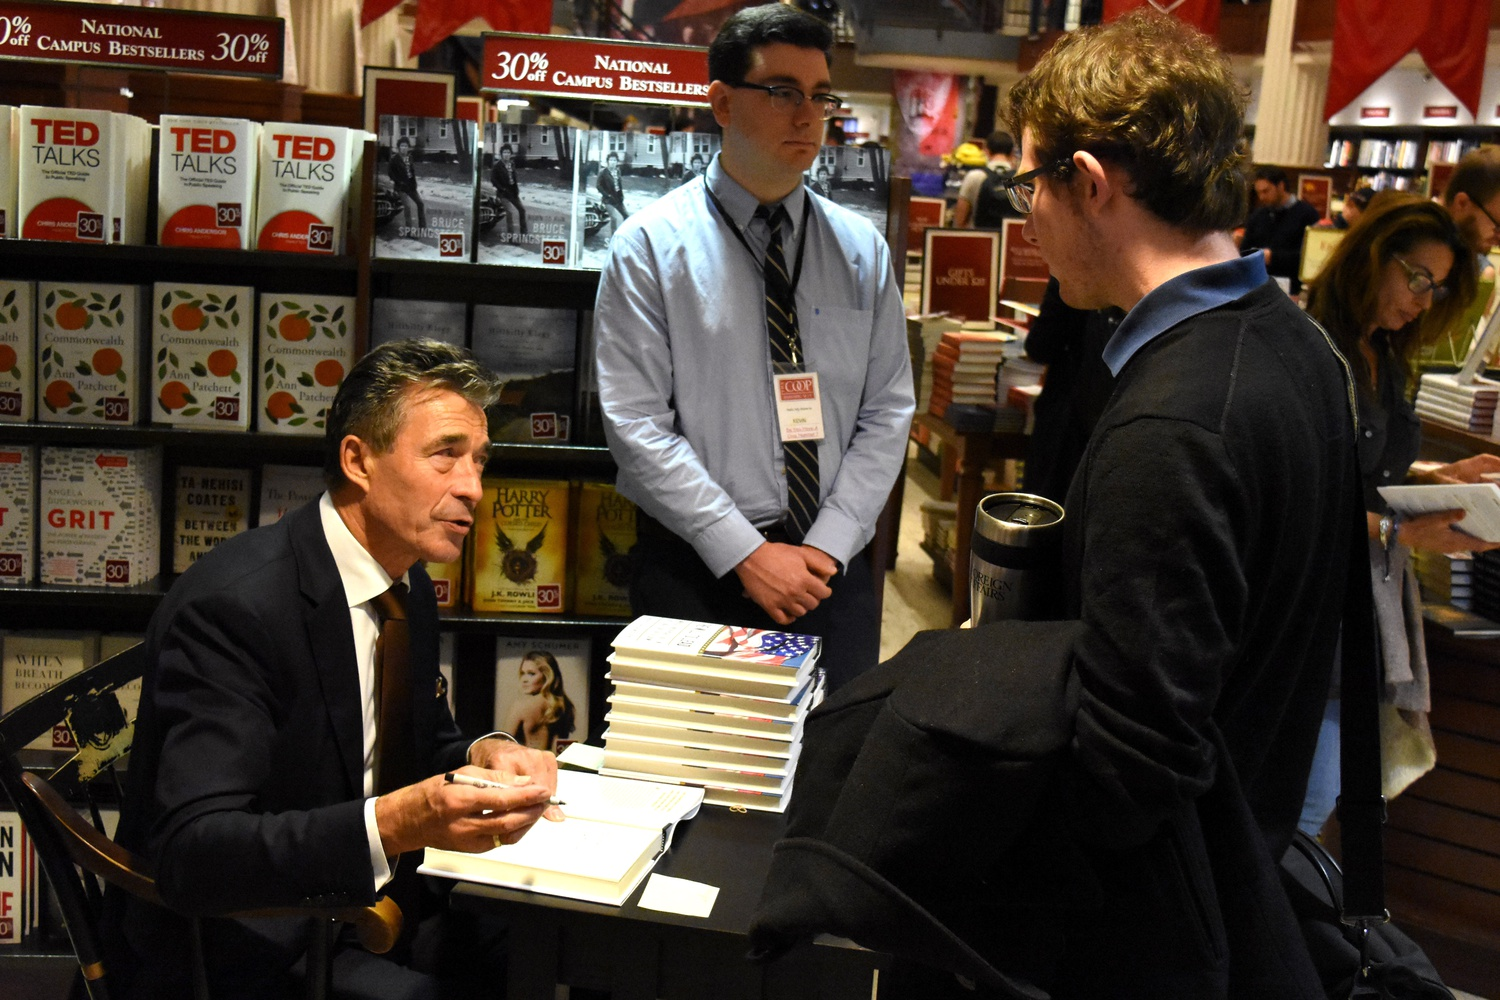 """Former Secretary-General of NATO and former Prime Minister of Denmark Anders Fogh Rasmussen signs his new book at the COOP Monday afternoon. His book, entitled """"The Will To Lead,"""" calls for American leadership in international affairs."""